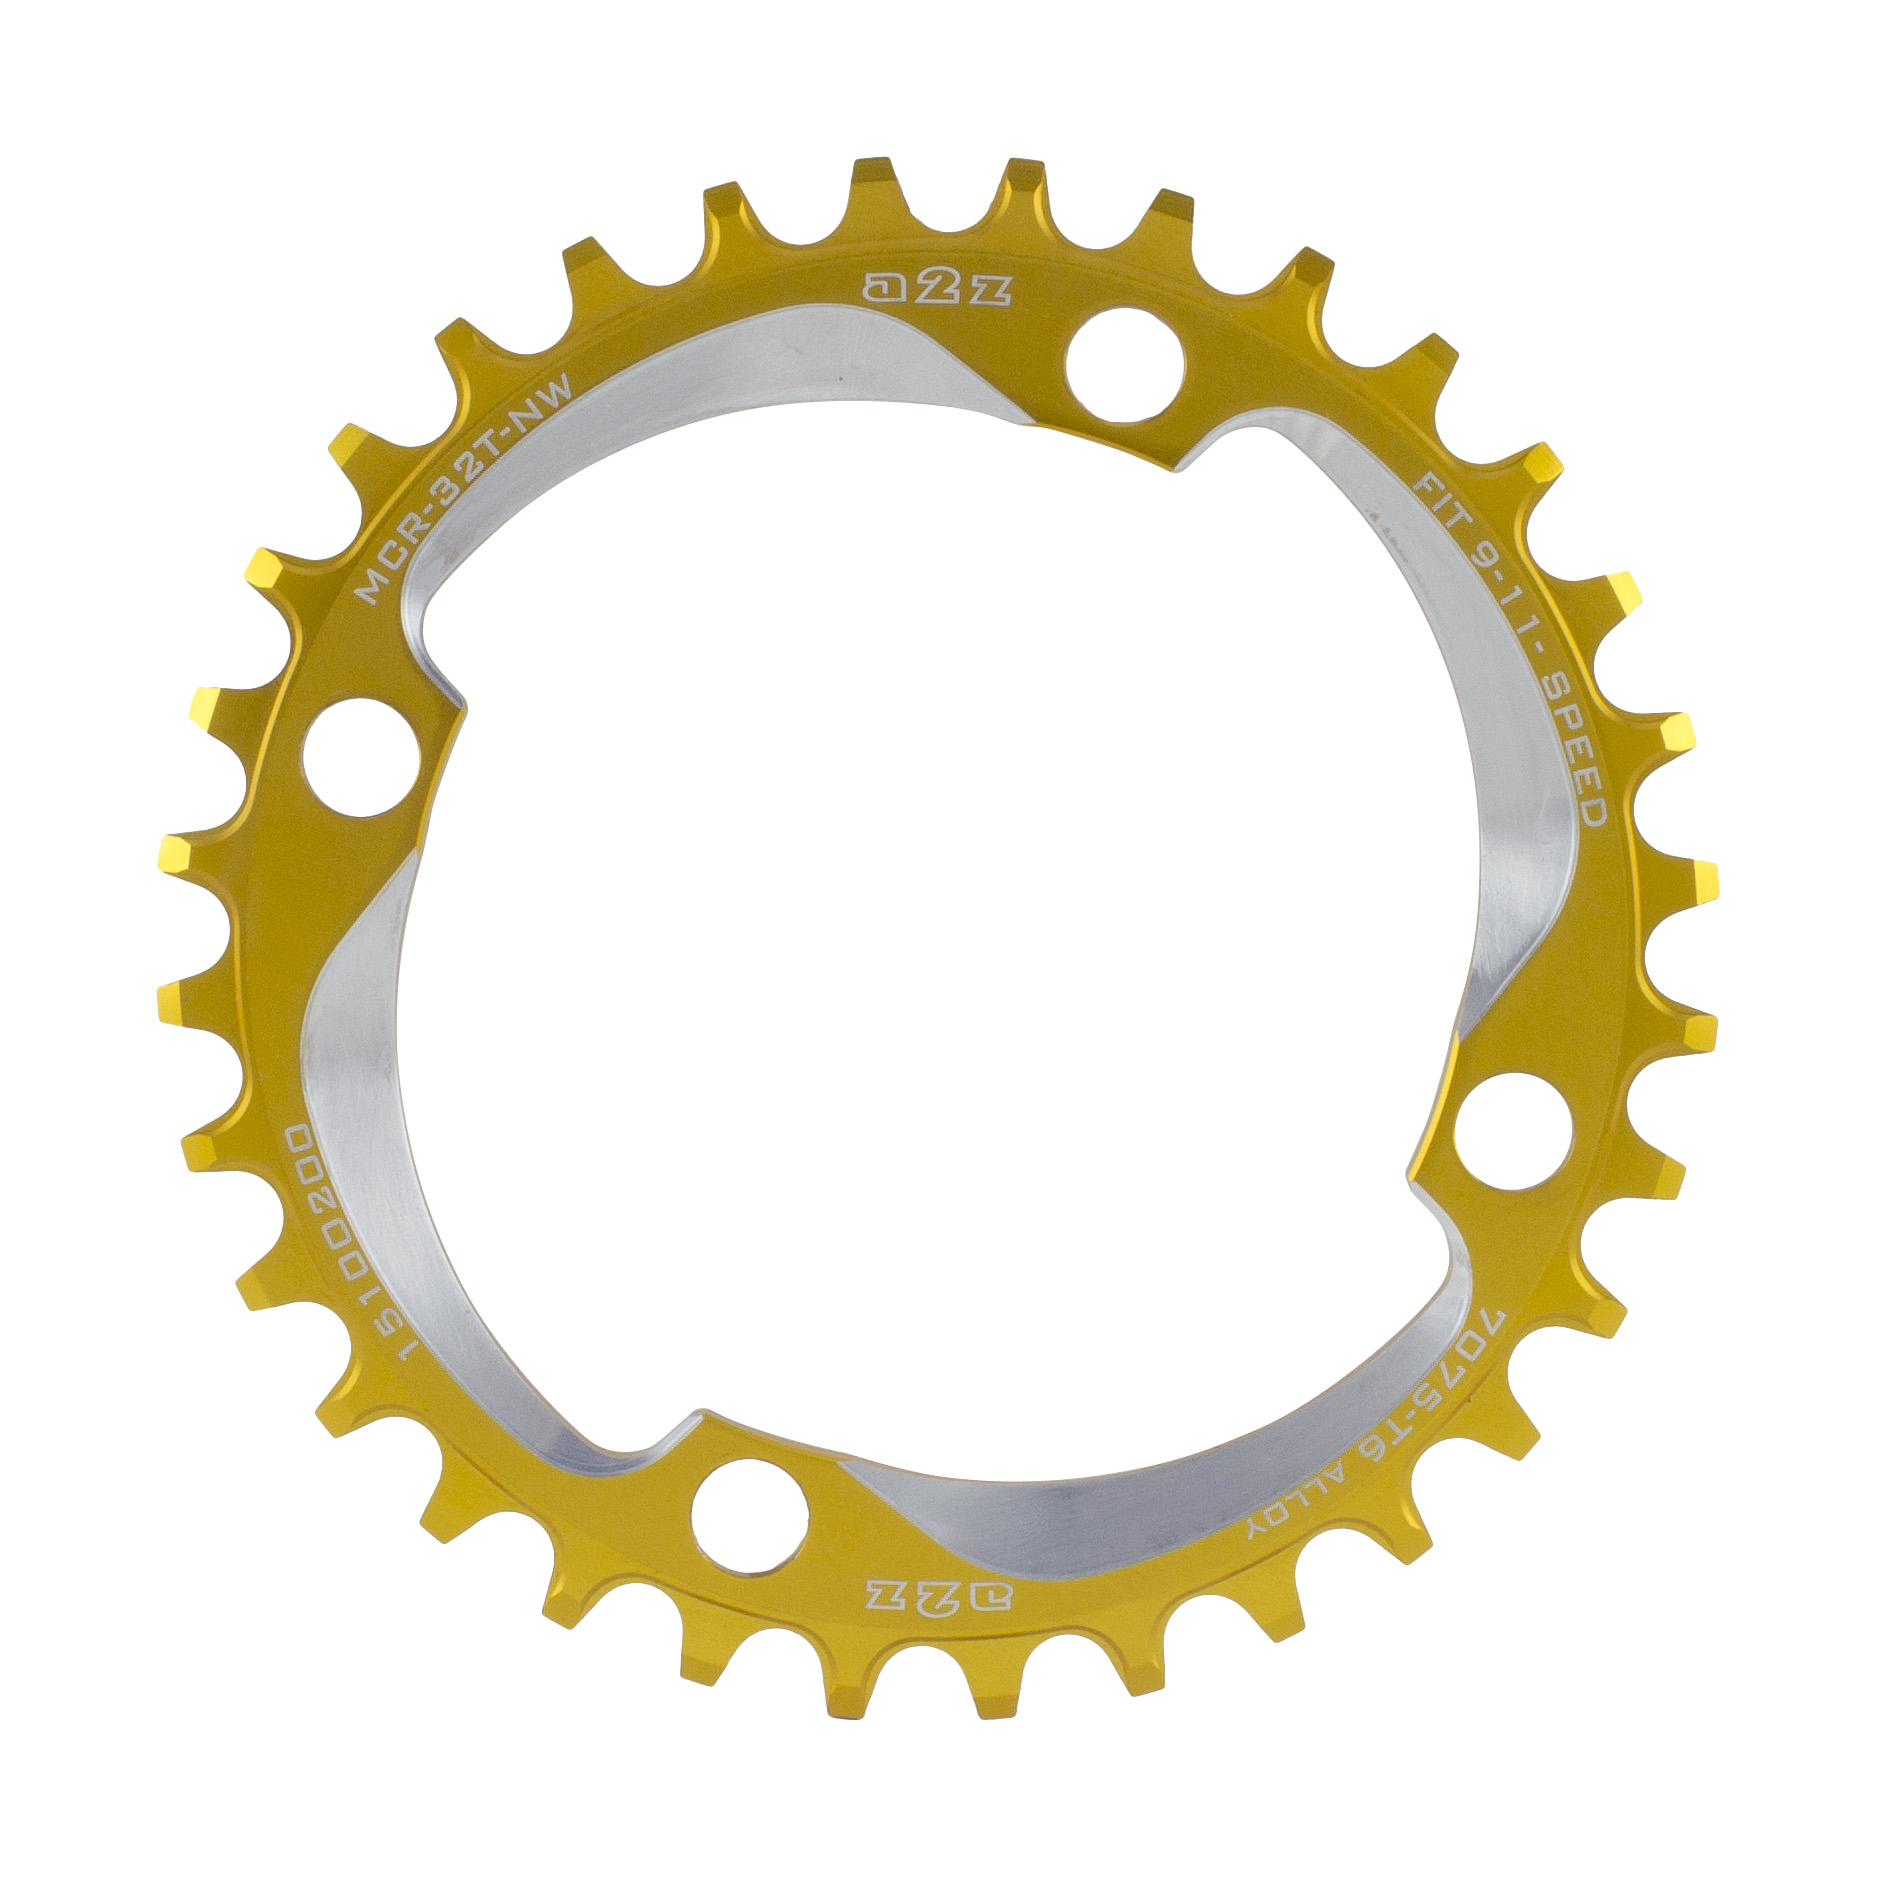 A2z-Narrow-Wide-Chainring-104Bcd-32T-Gold